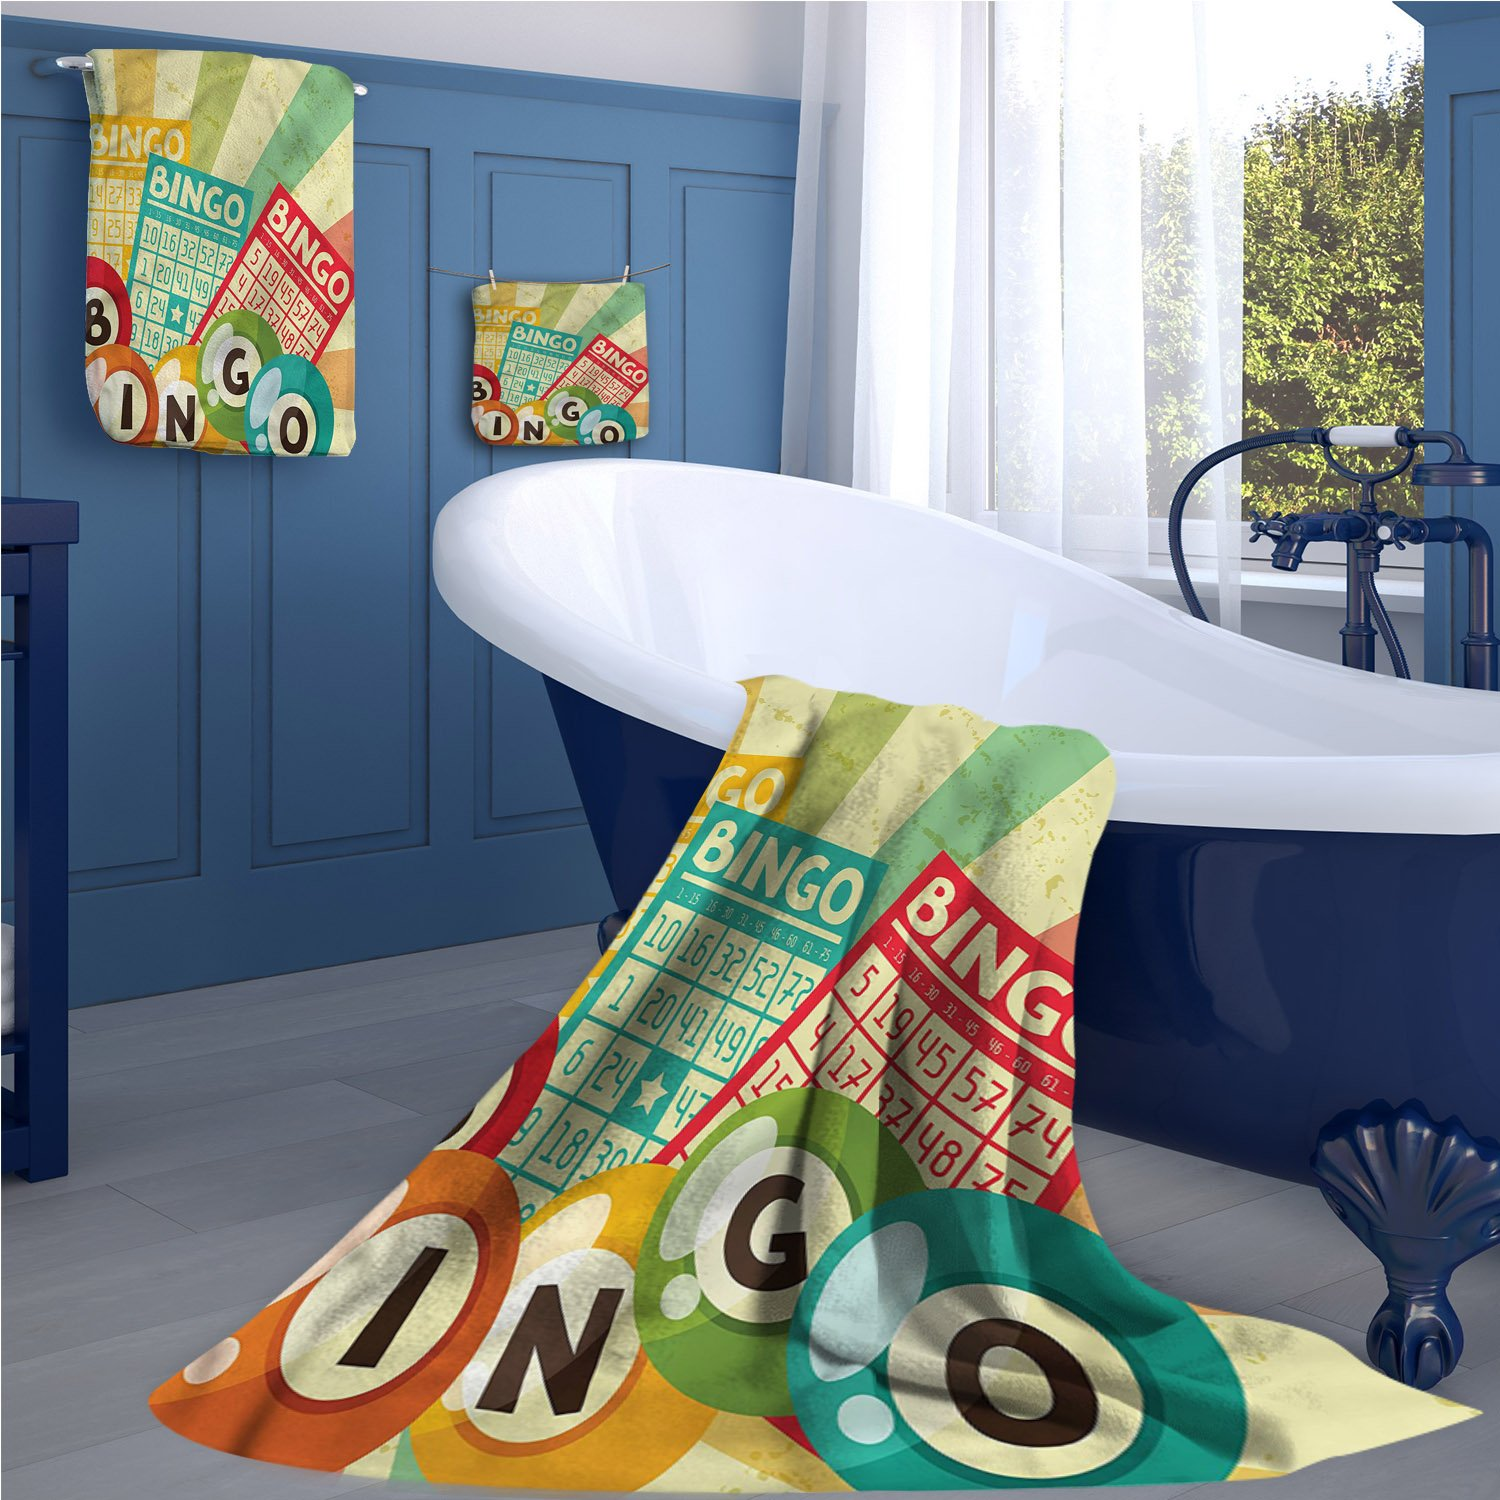 Vintage Long Bathroom Accessories Set Bingo Game with Ball and Cards Pop Art Stylized Lottery Hobby Celebration Theme Custom towel set Multicolor by familytaste